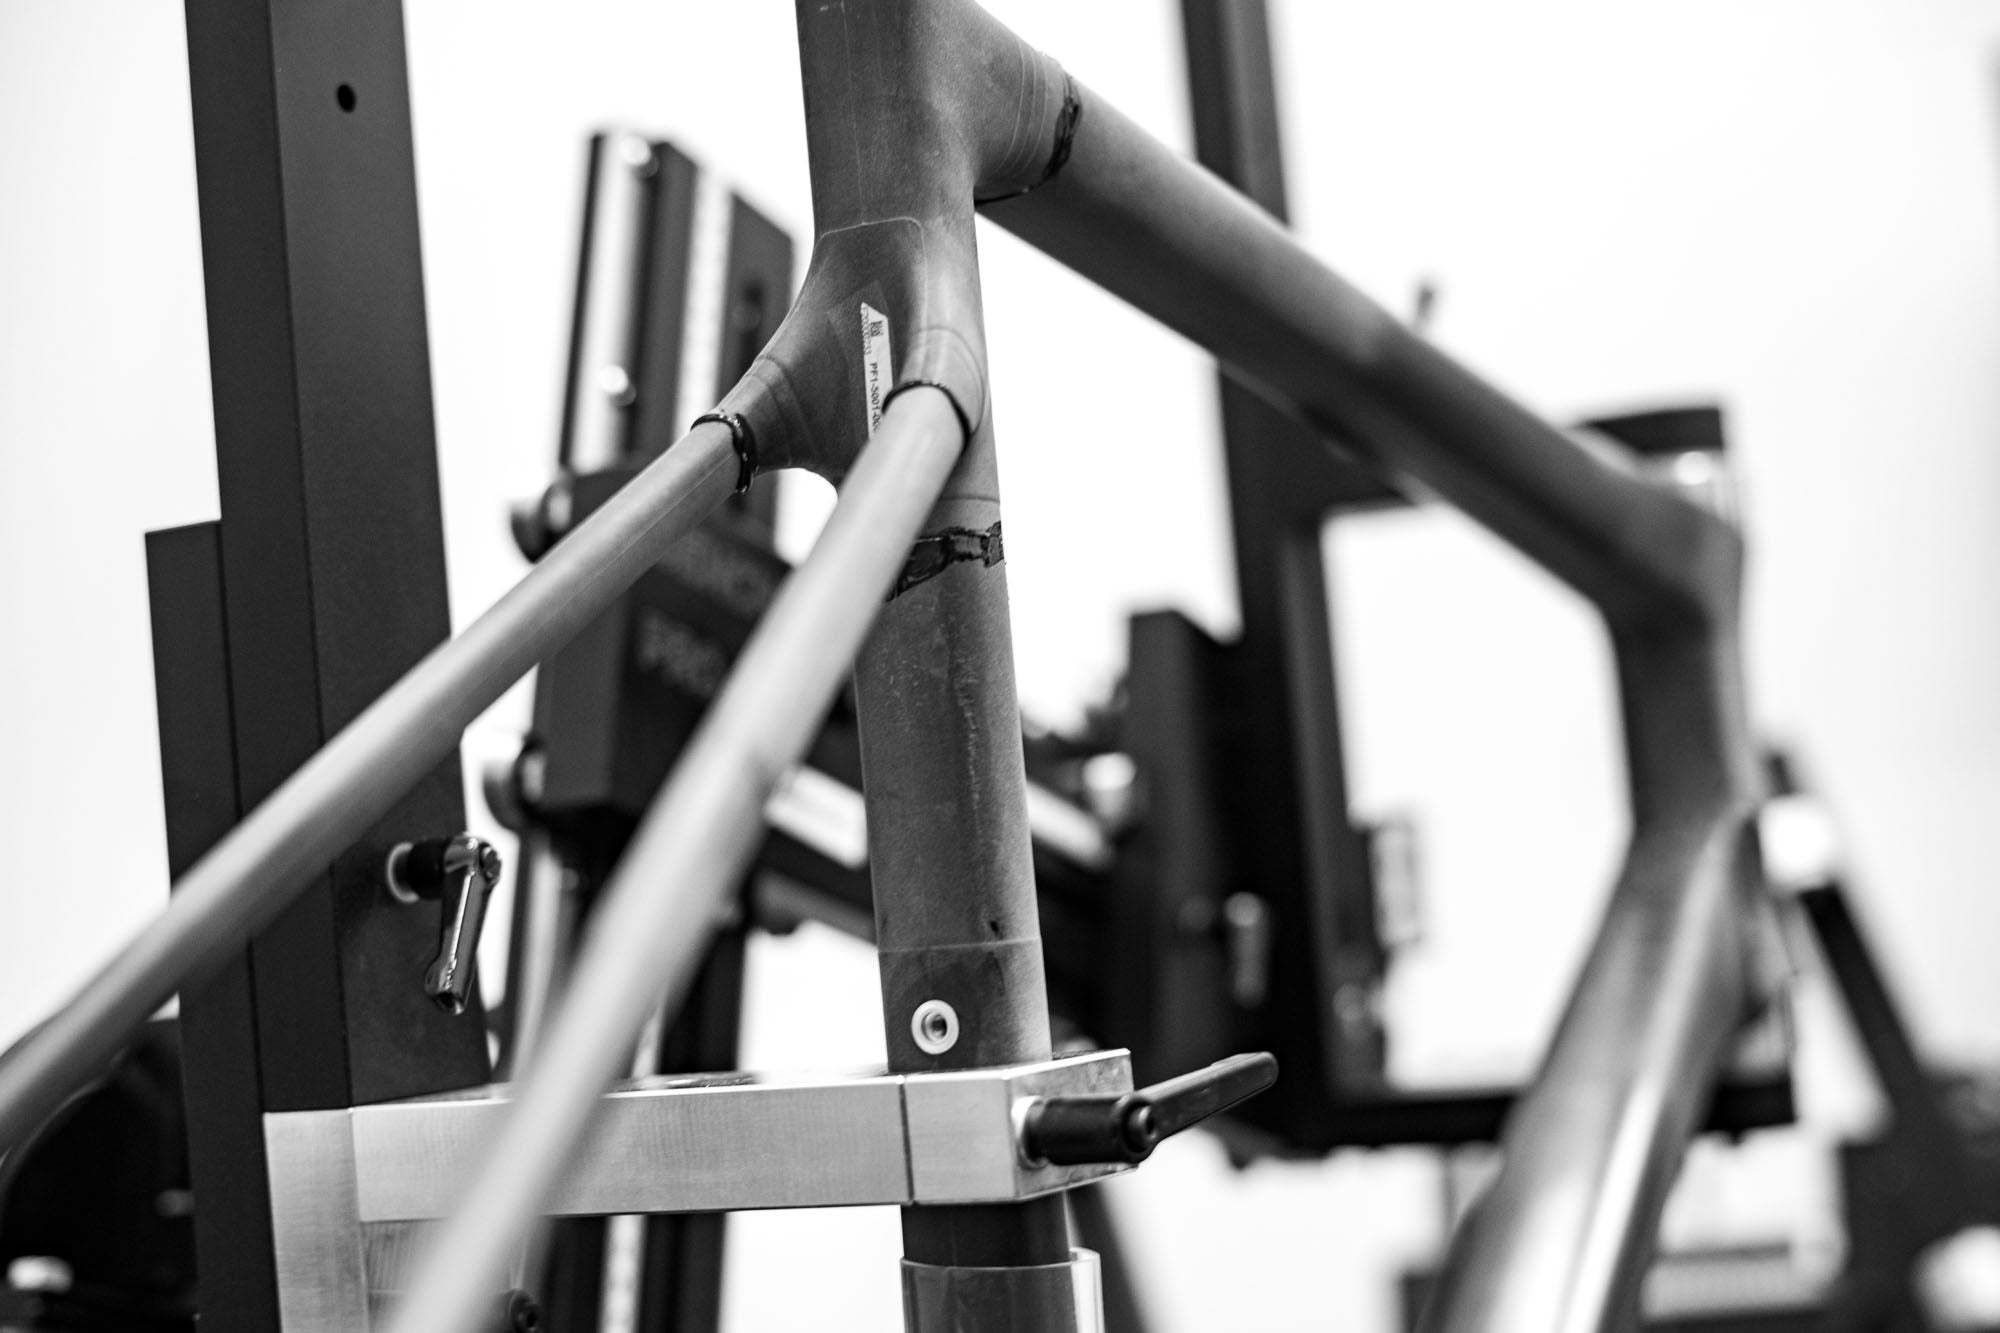 ENVE Custom road frame being built